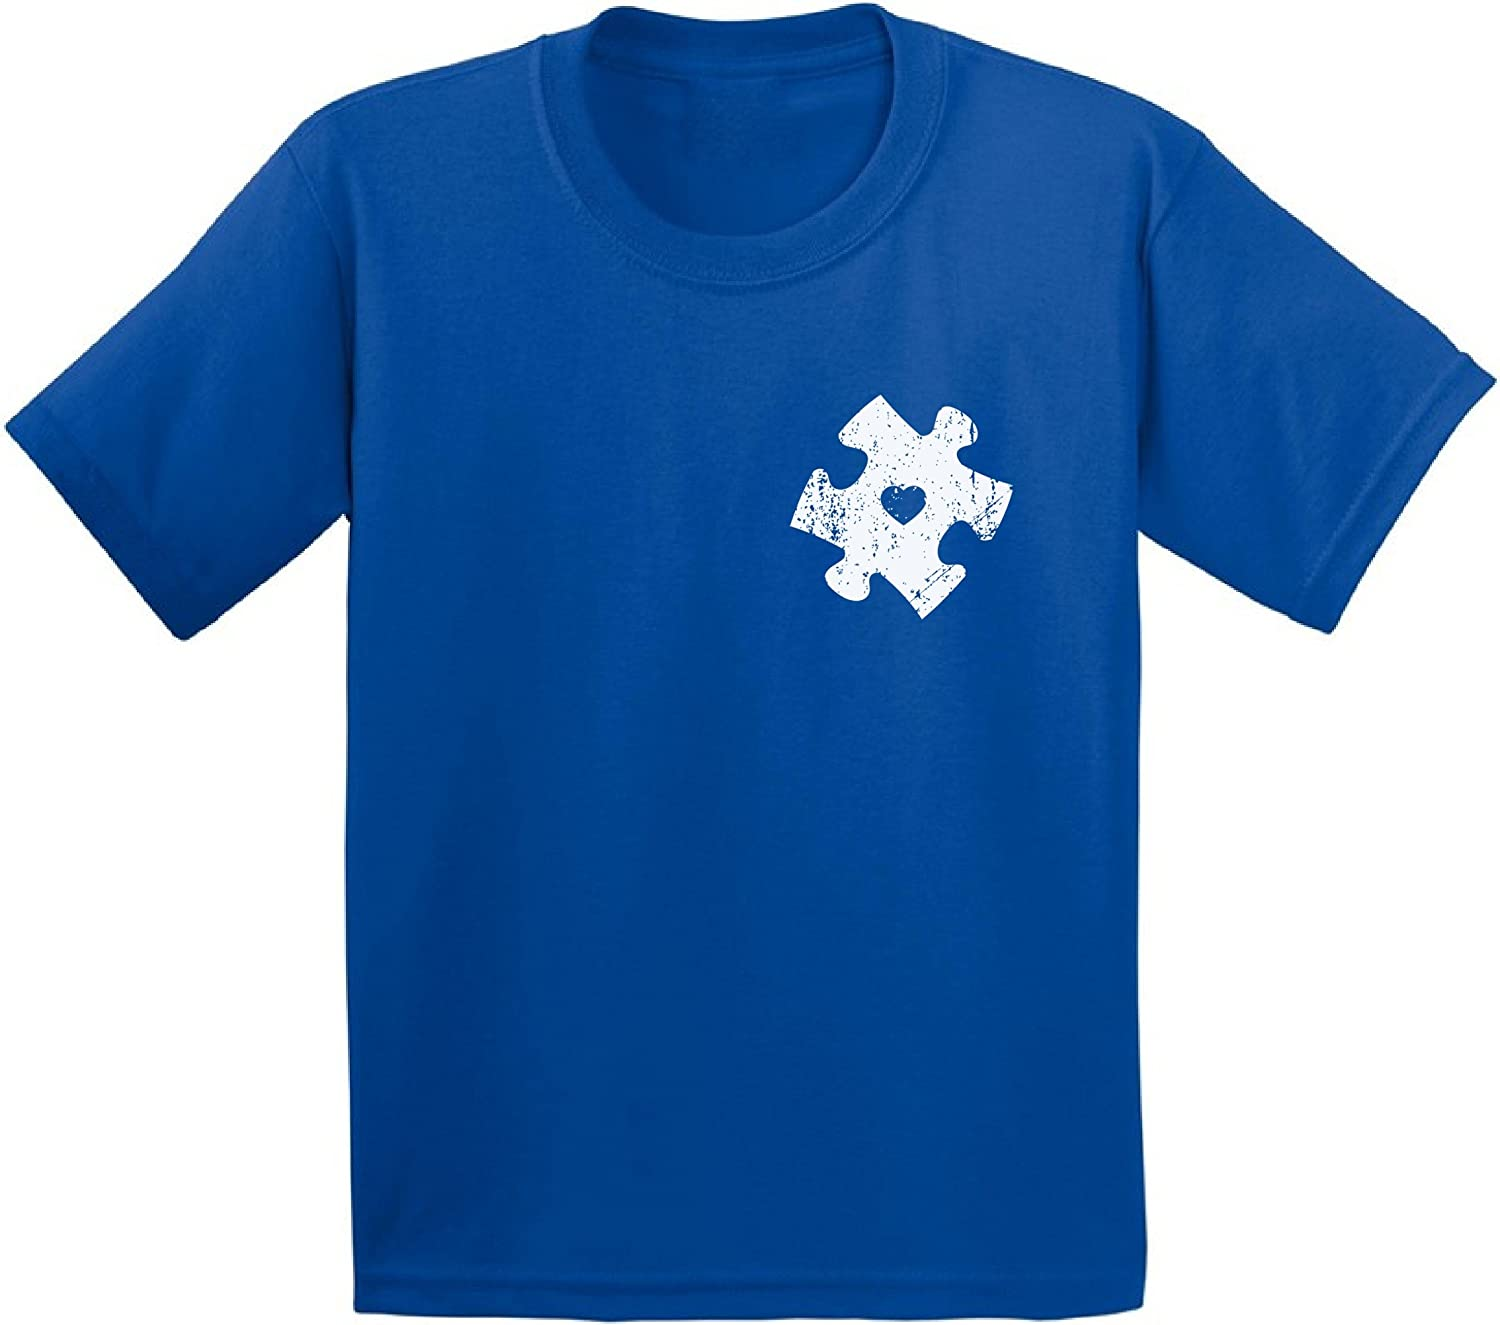 Awkward Styles Puzzle Autism Shirts Kids Autism Awareness Shirts for Toddlers